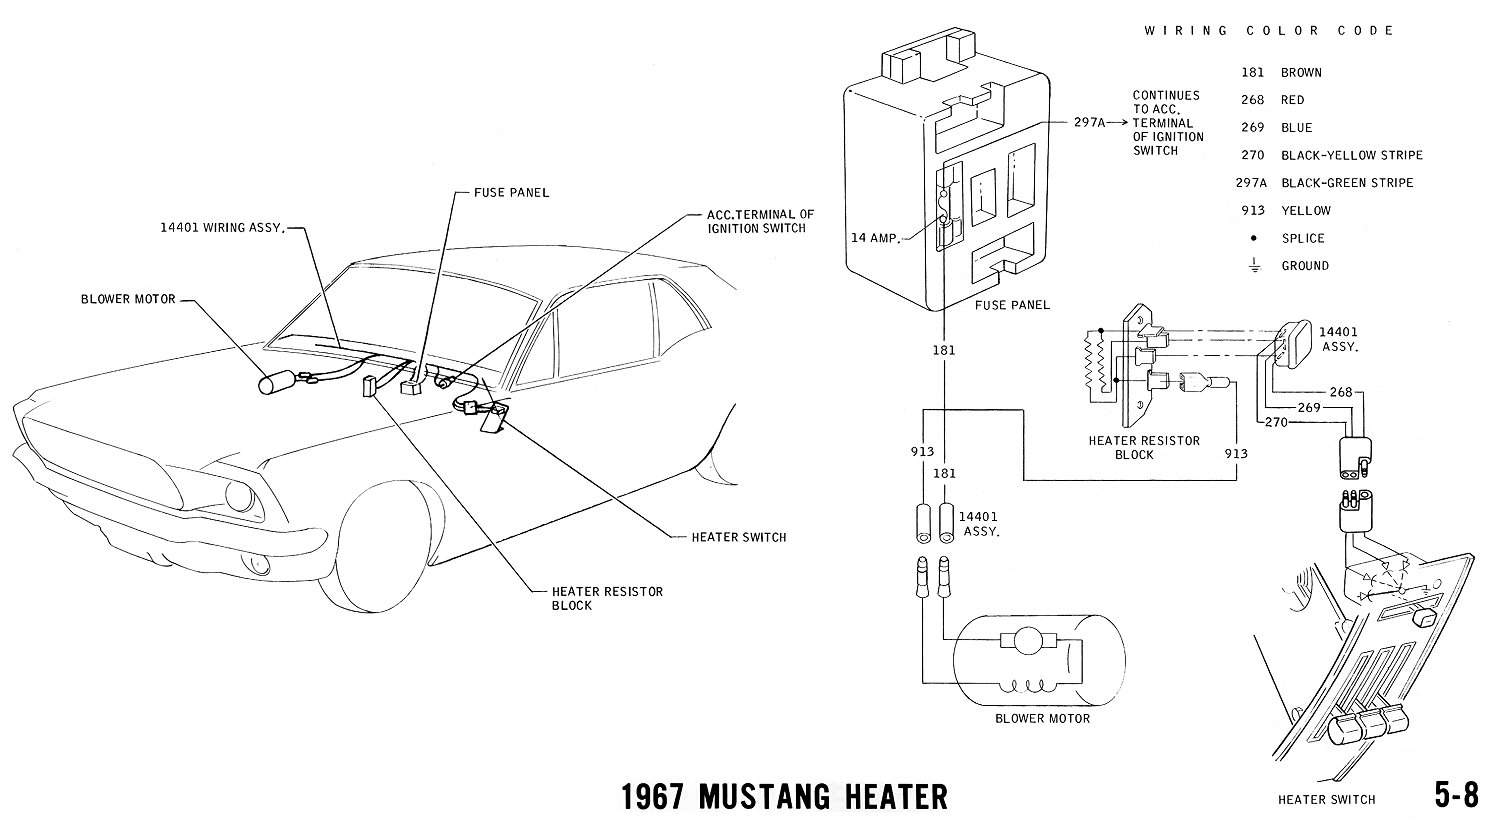 65 Mustang Heater Wiring Diagram Data Harness For 93 Blower Motor Library